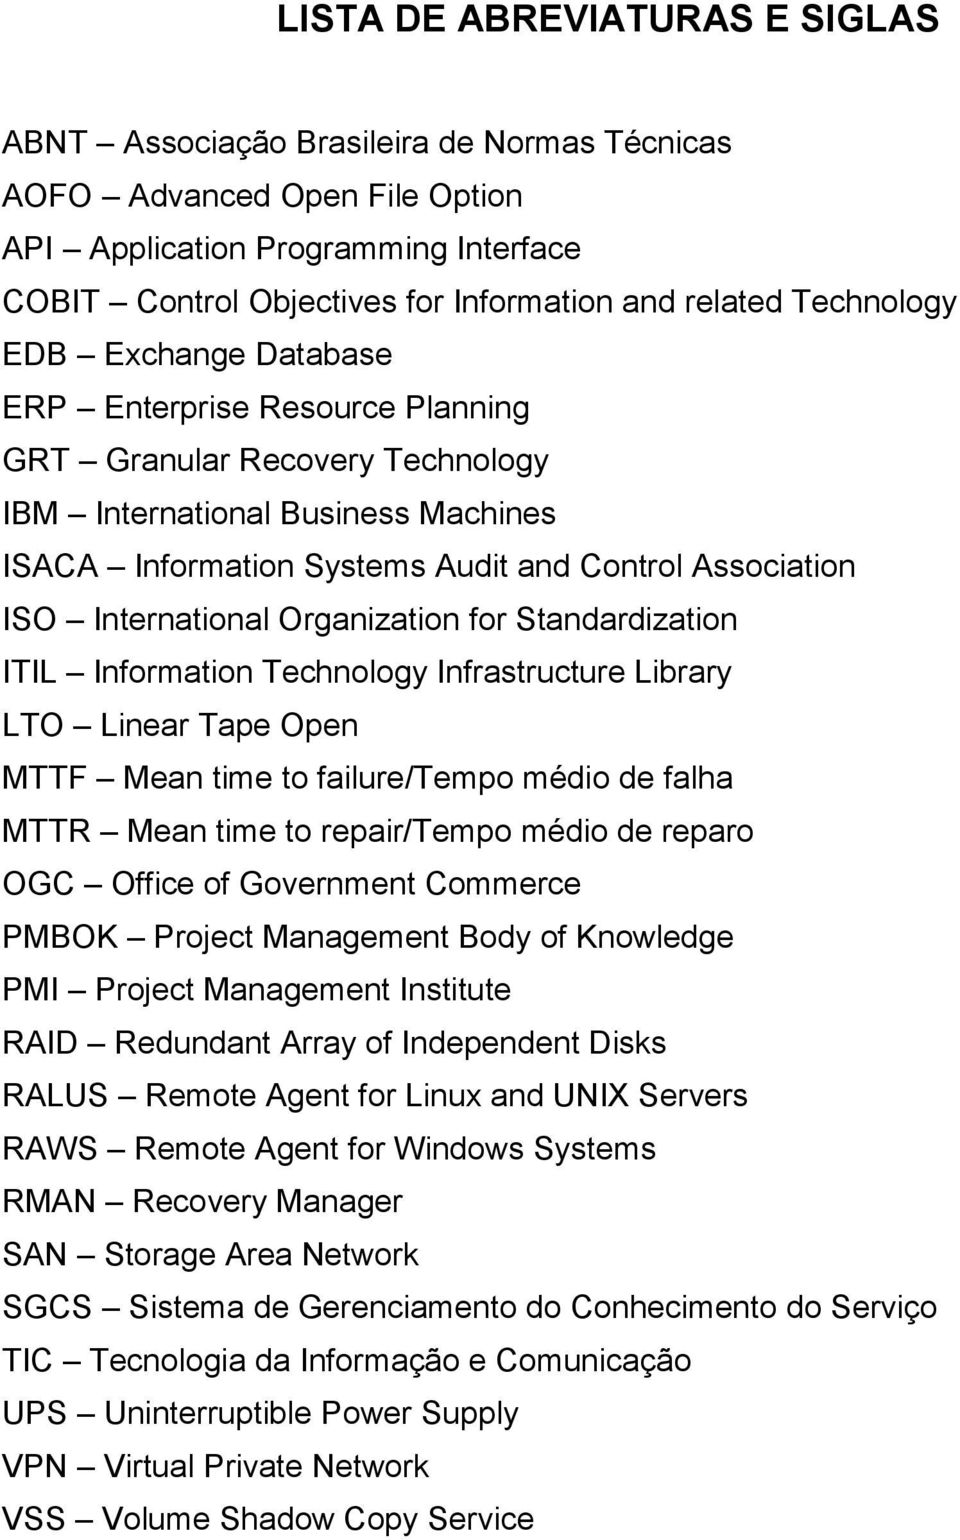 International Organization for Standardization ITIL Information Technology Infrastructure Library LTO Linear Tape Open MTTF Mean time to failure/tempo médio de falha MTTR Mean time to repair/tempo